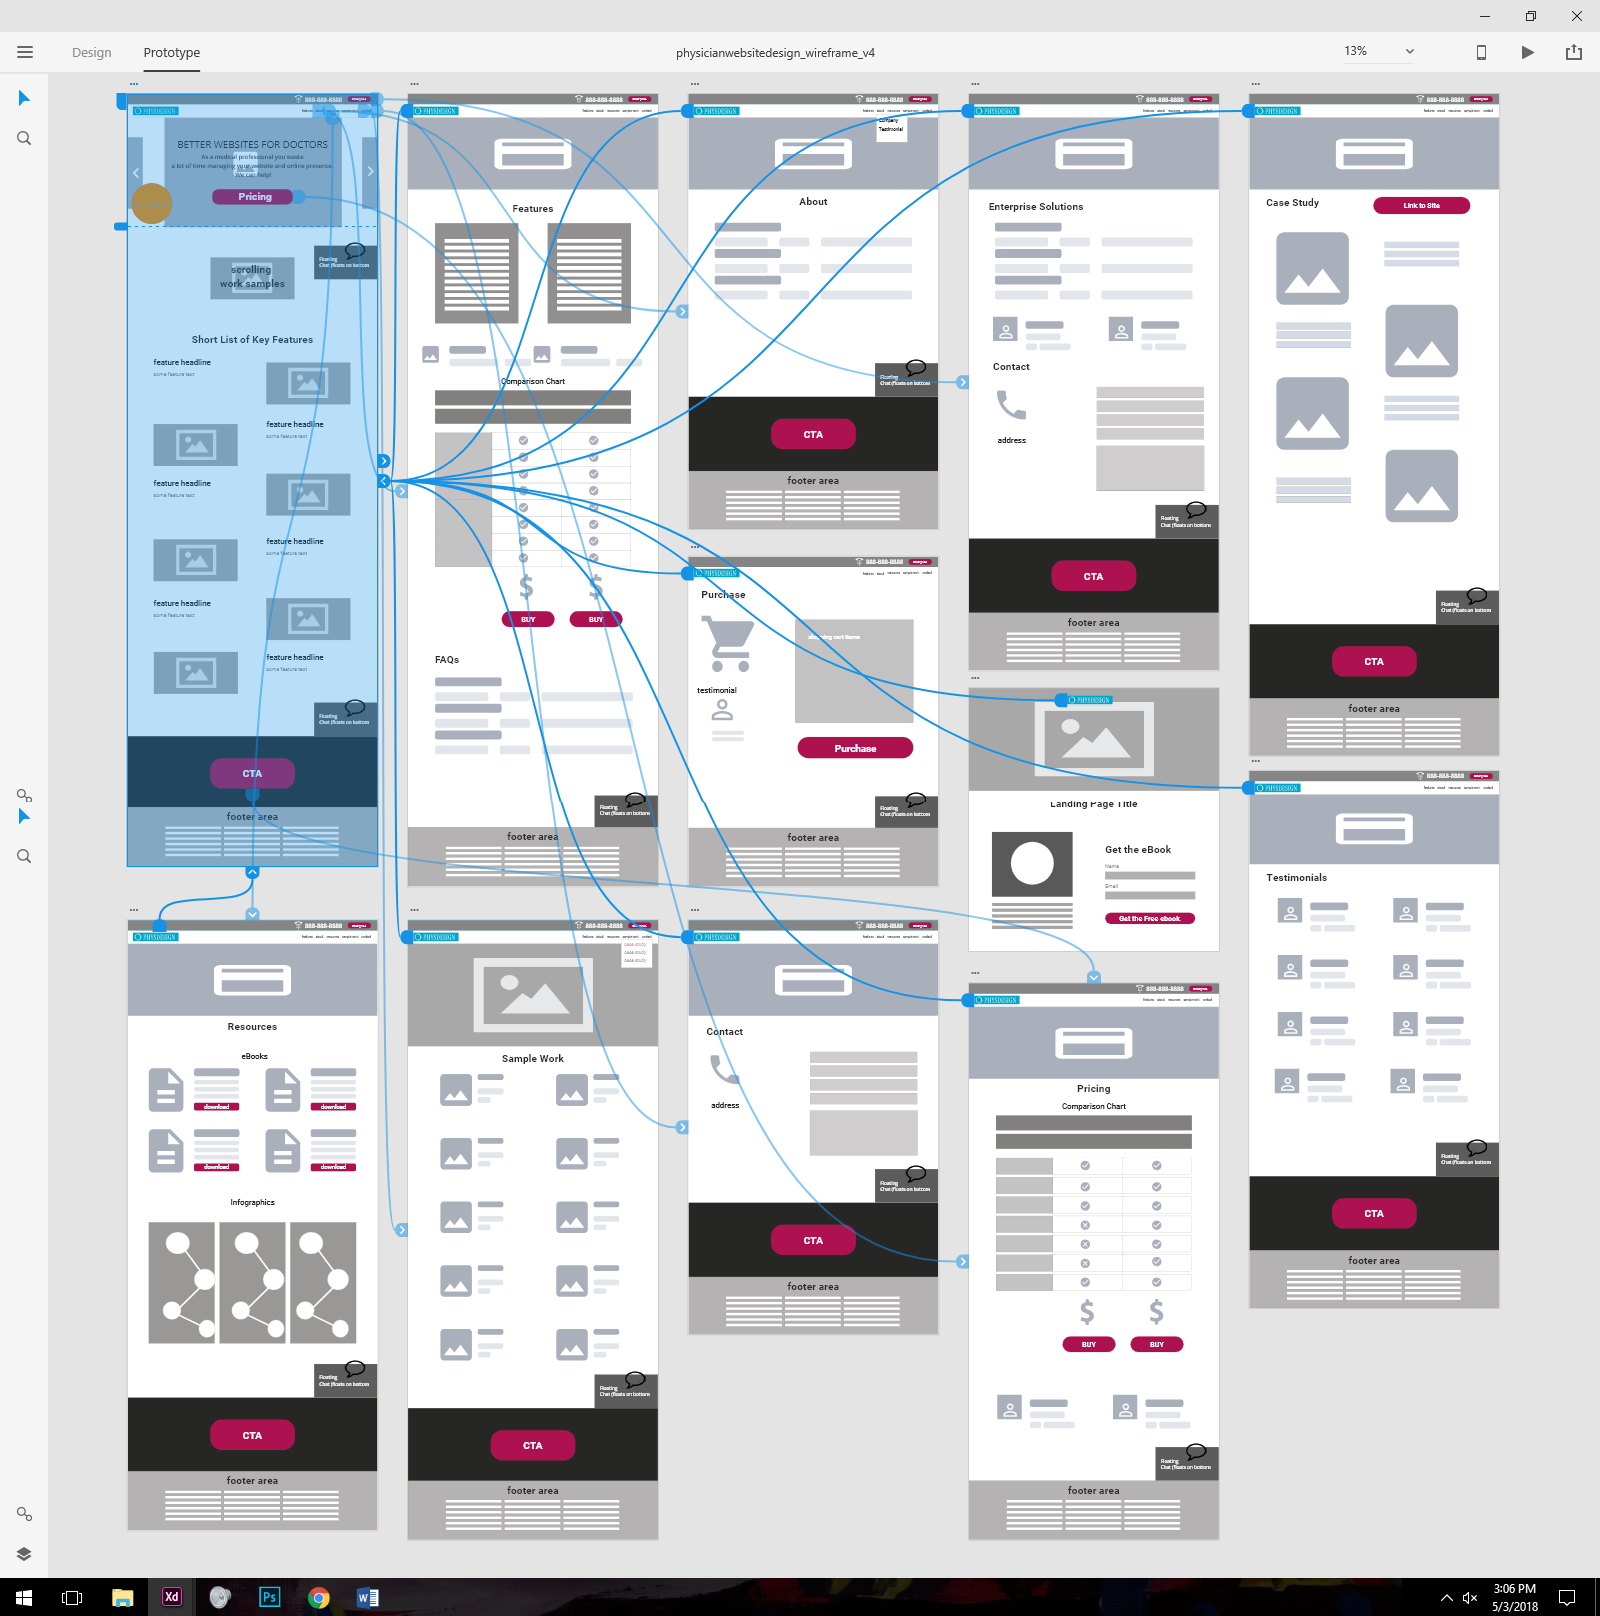 My UX / UI thoughts and design process, as the Lead UX / UI designer, in refurbishing a medical marketing company's desktop and mobile presence.